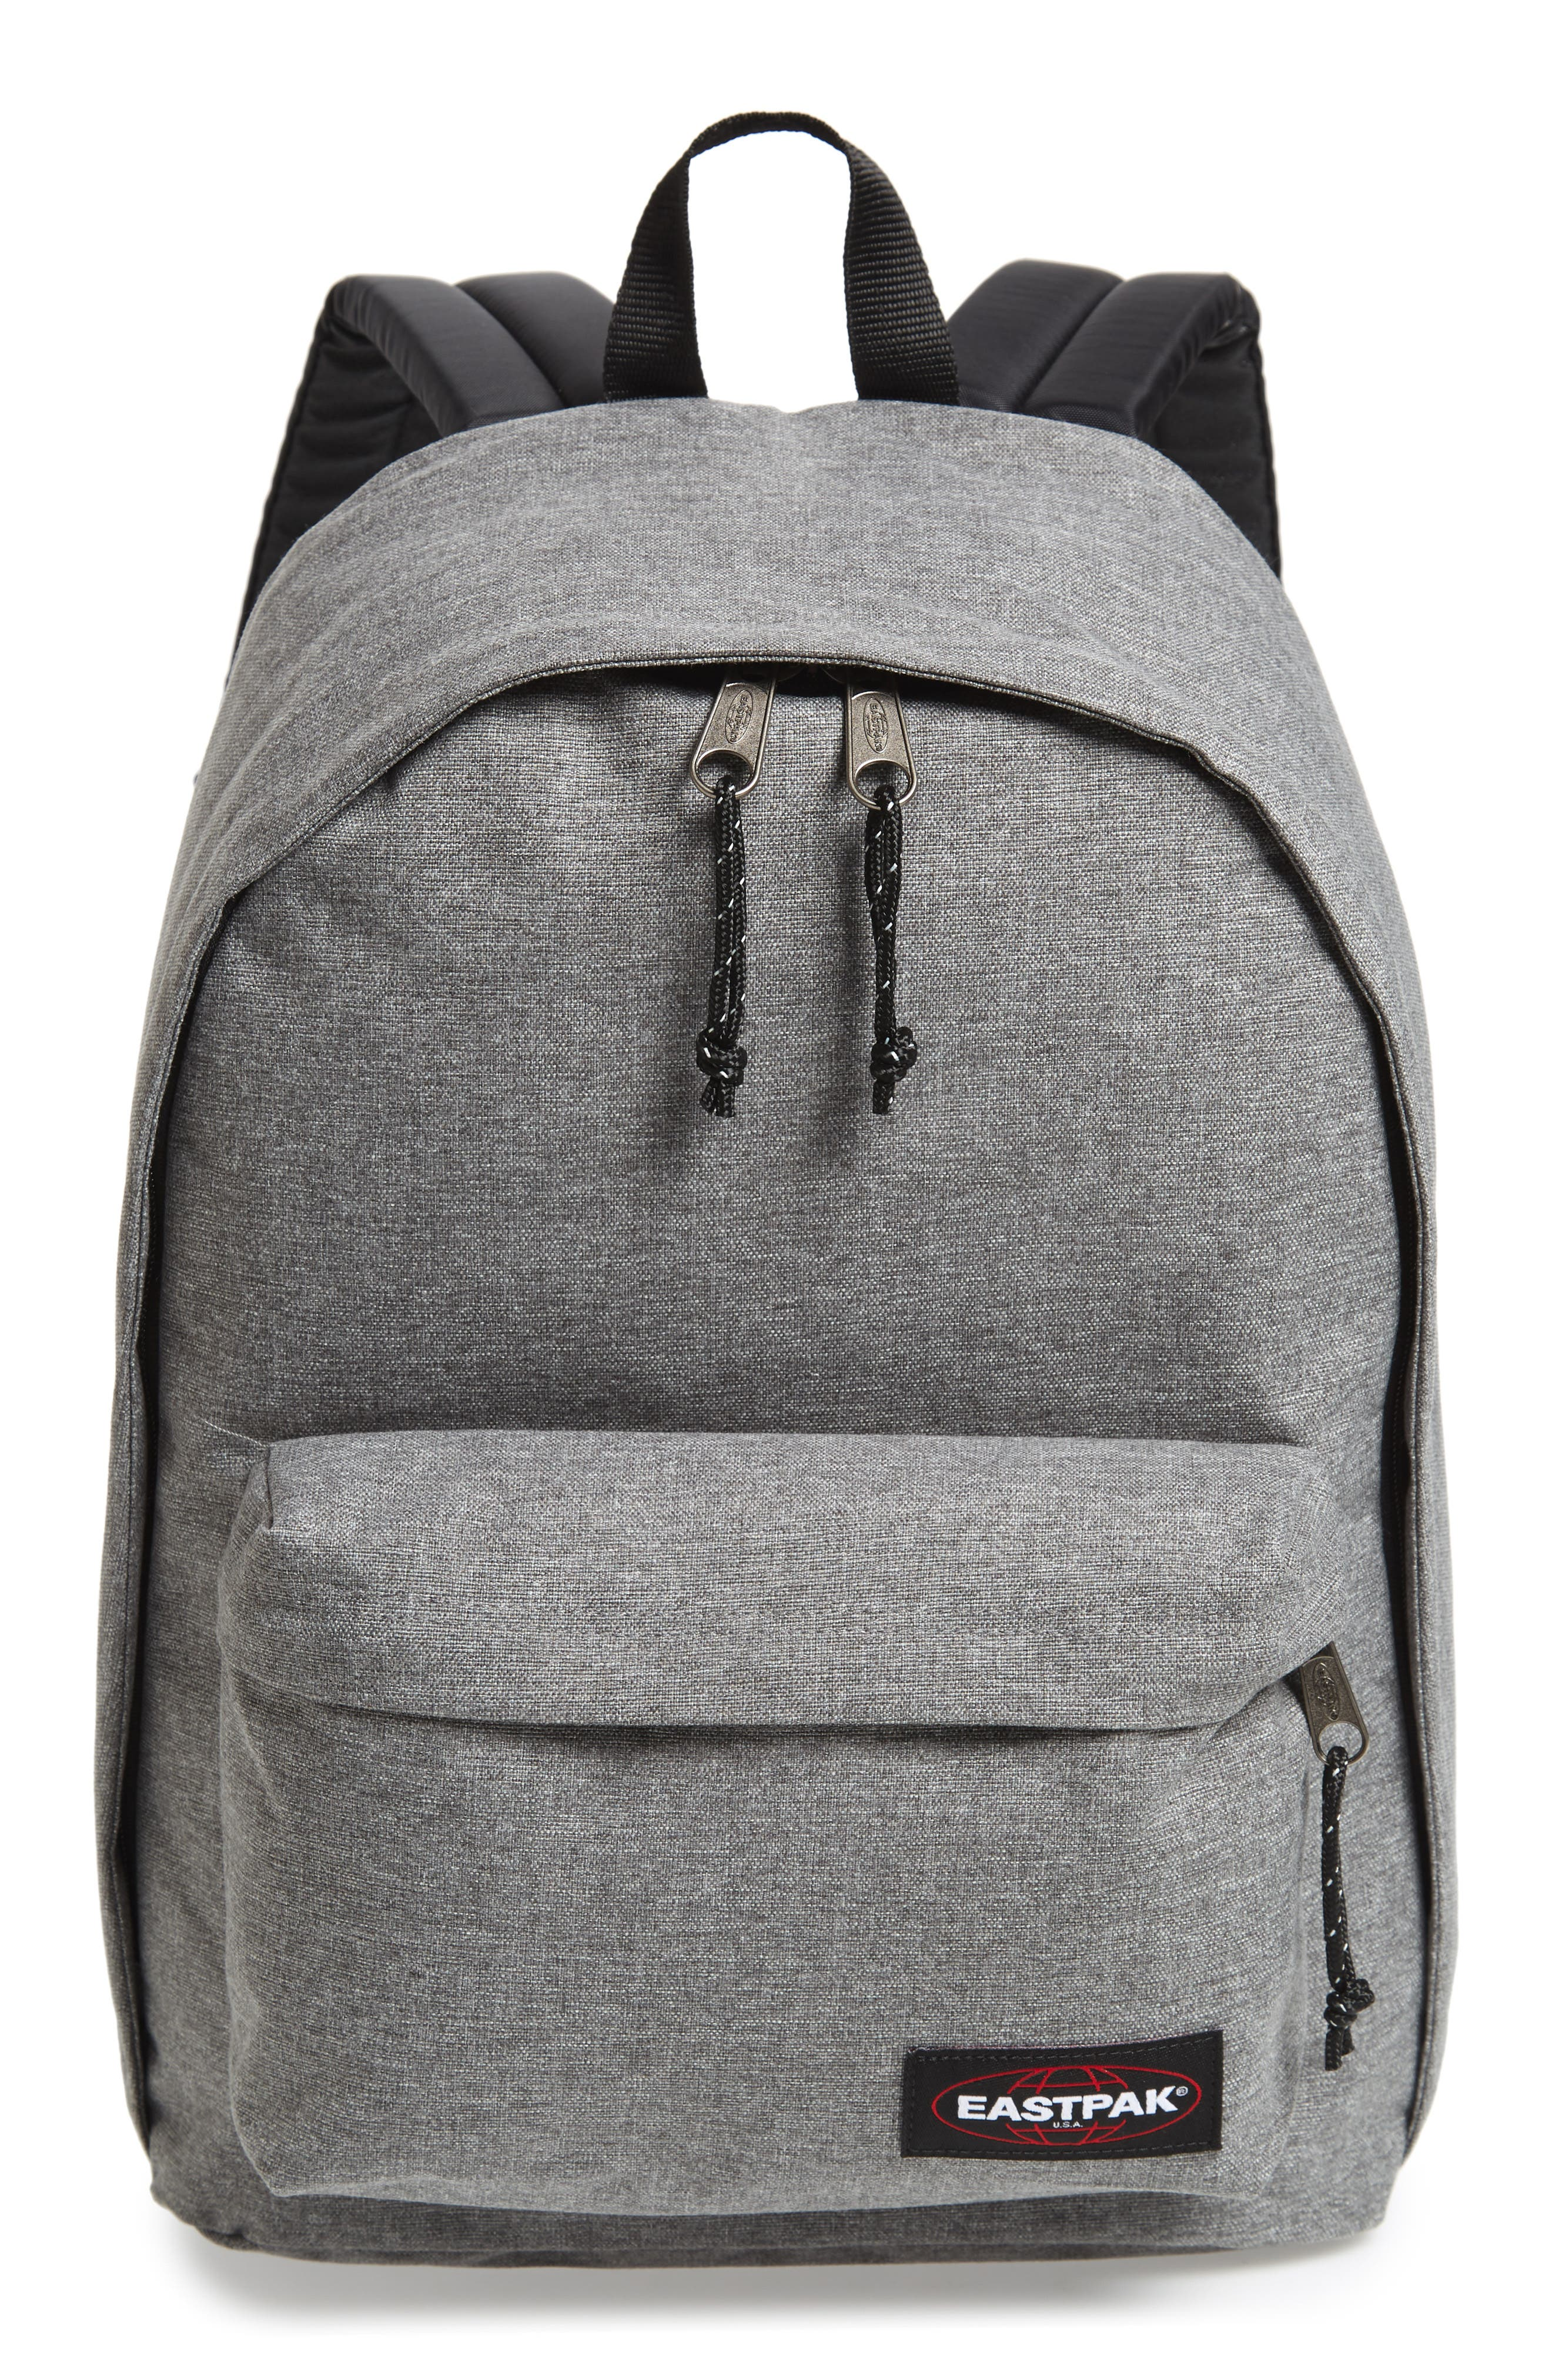 Eastpak Out Of Office Backpack - Grey